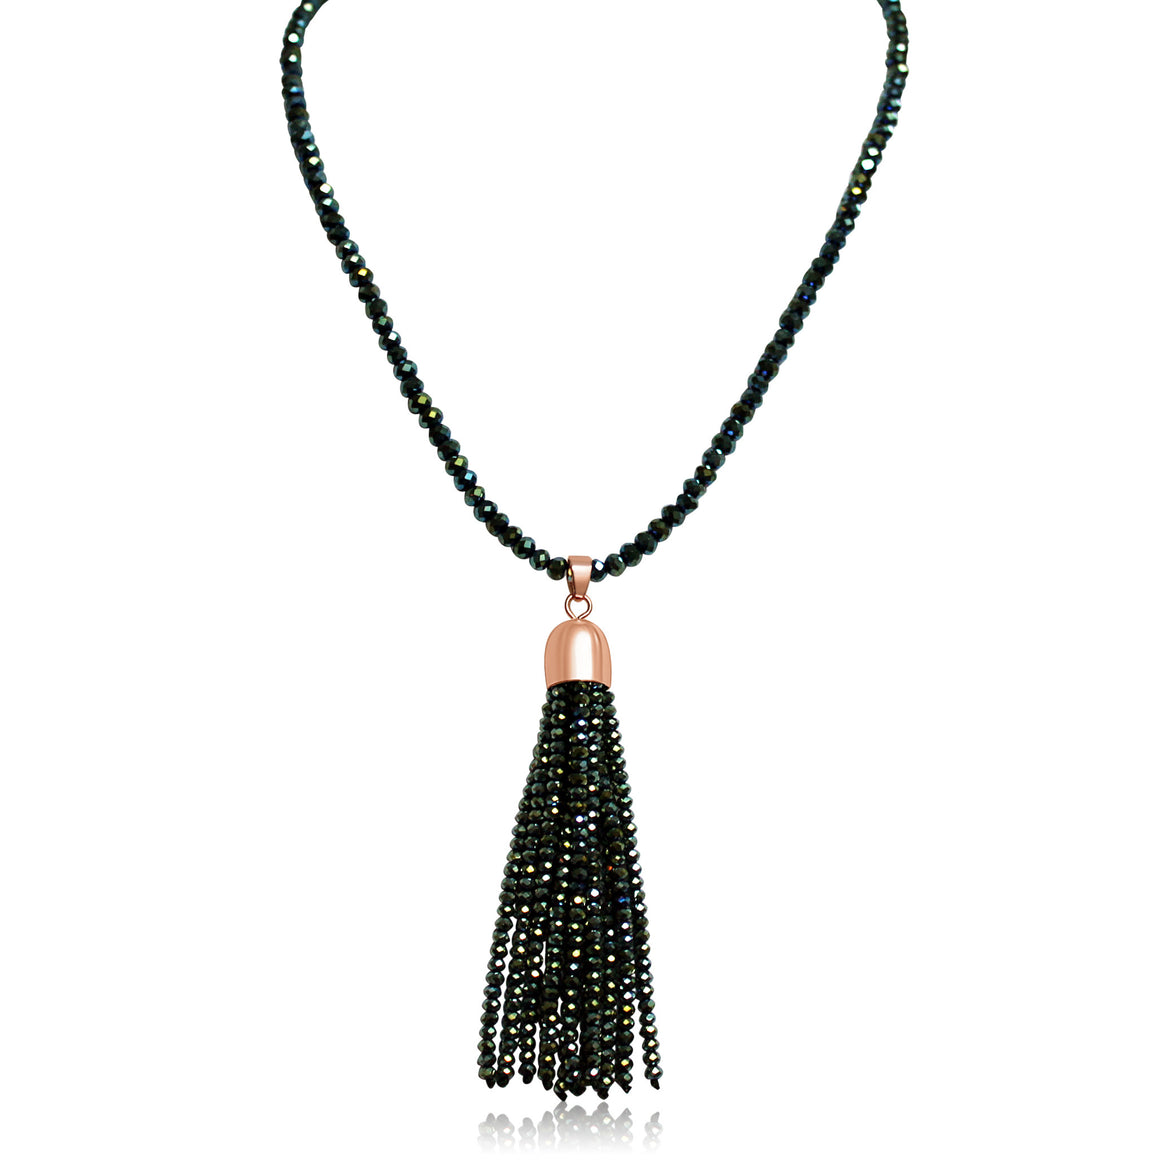 Crystal Tassel - Sea Green with rose gold magnets